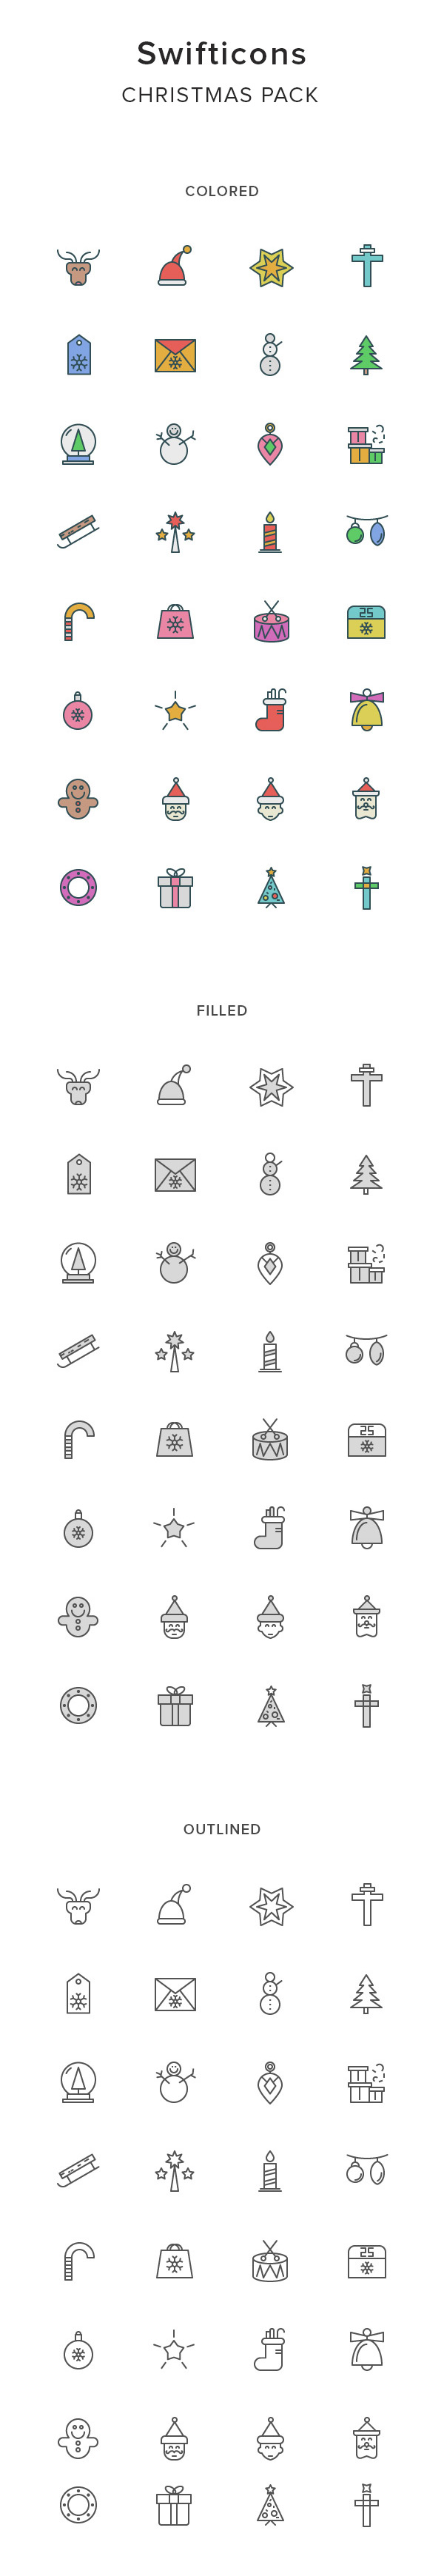 swifticons-32x3-christmas-icons